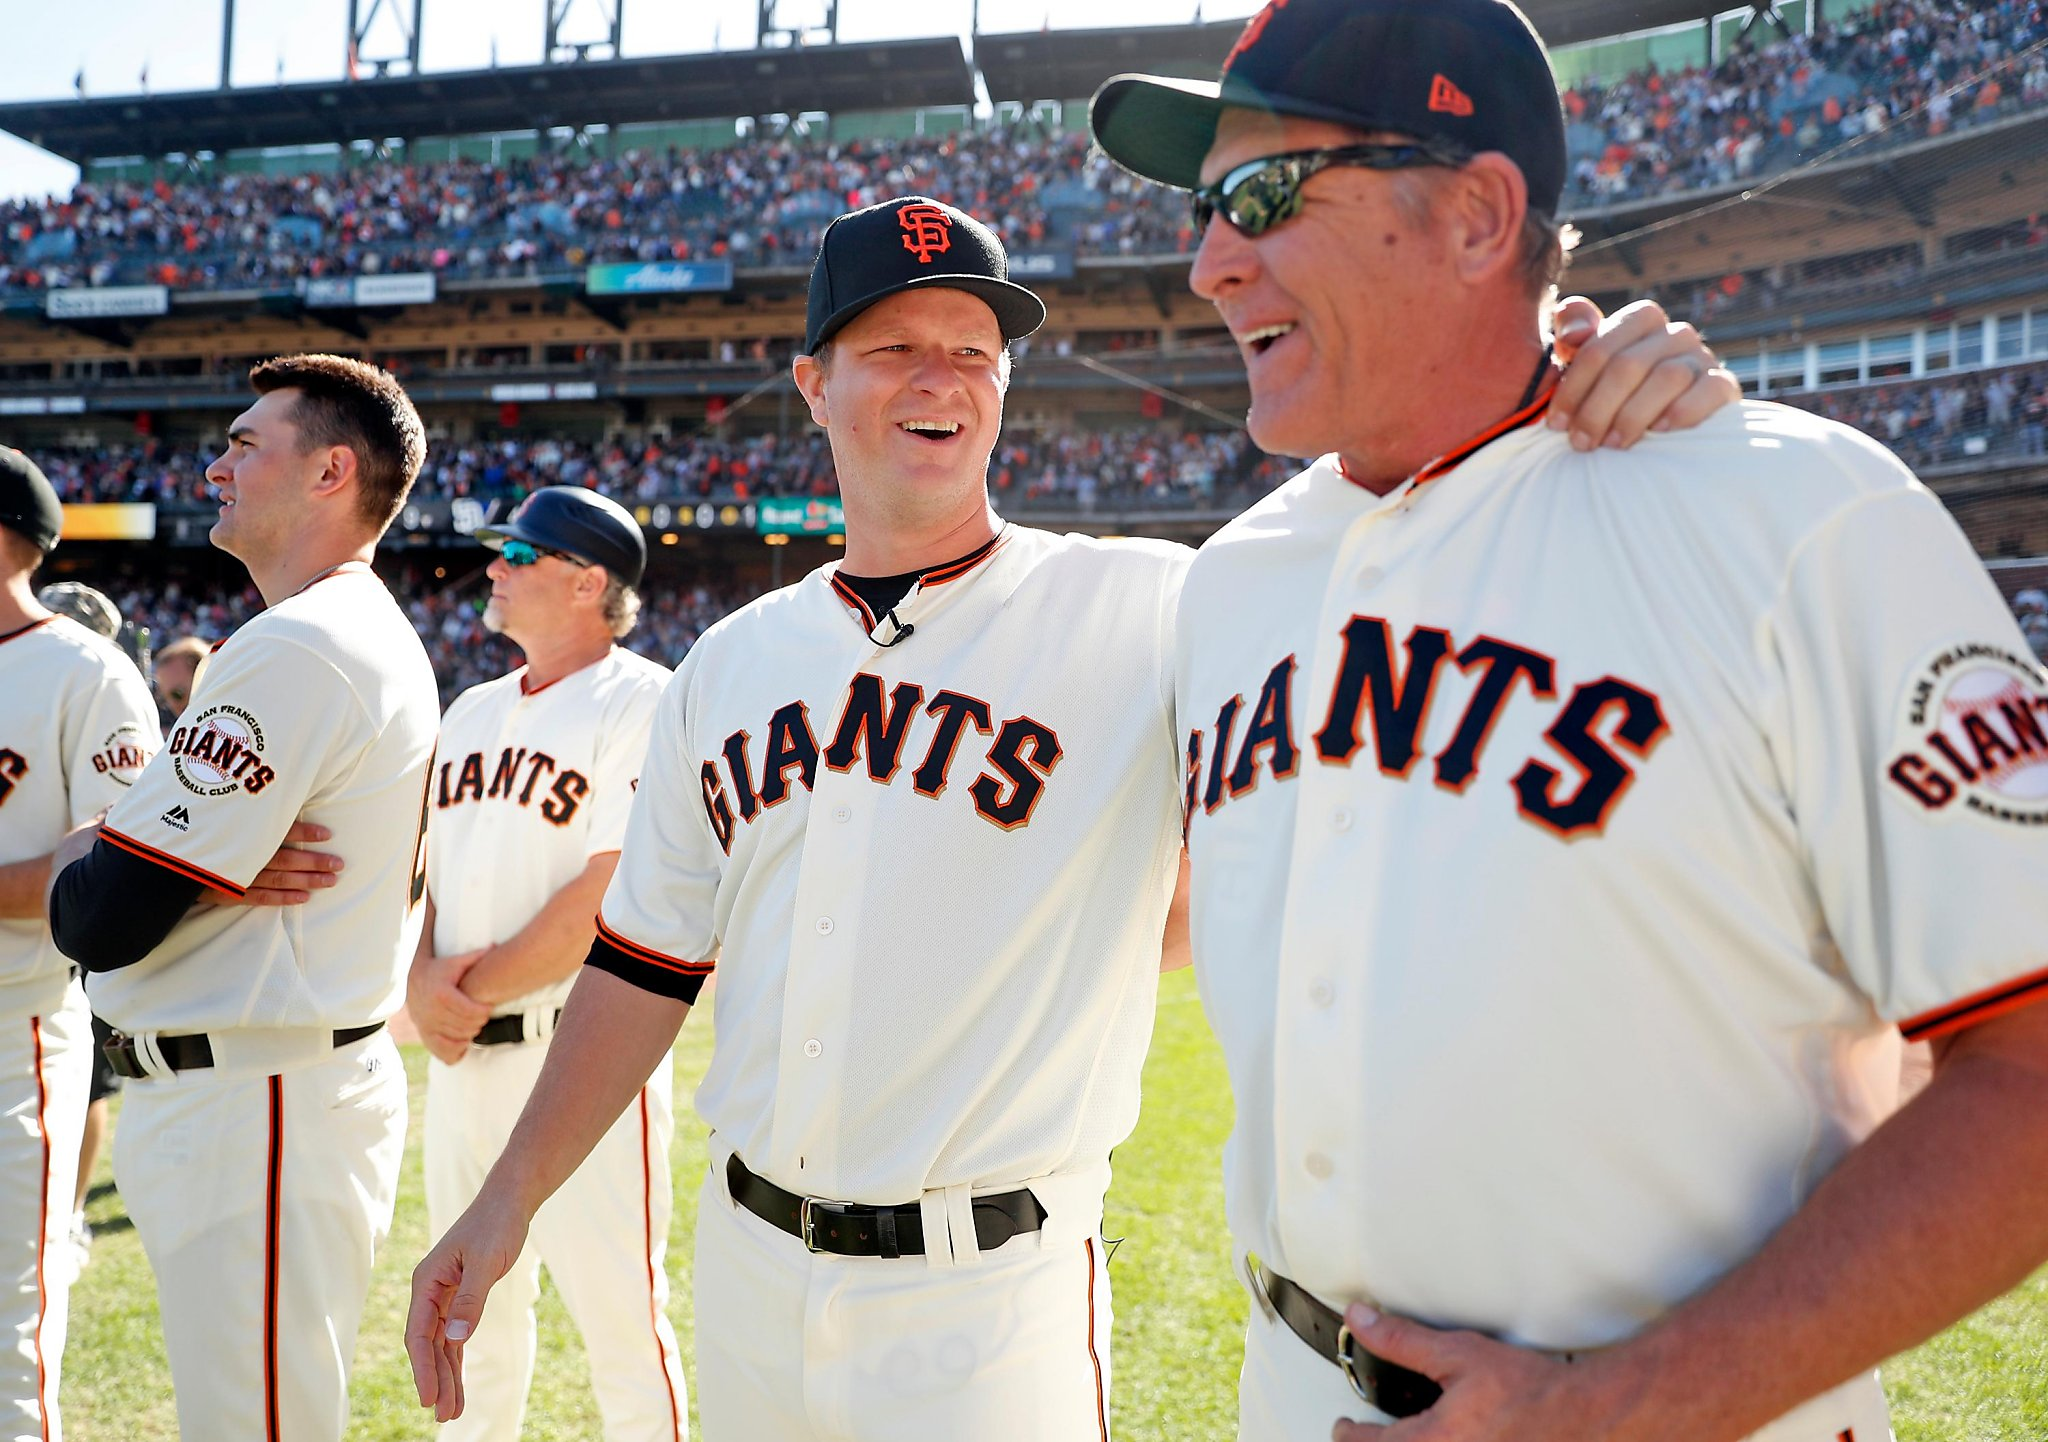 Giants Fire Dave Righetti and Shawon Dunston, 2020 Carnage Continues